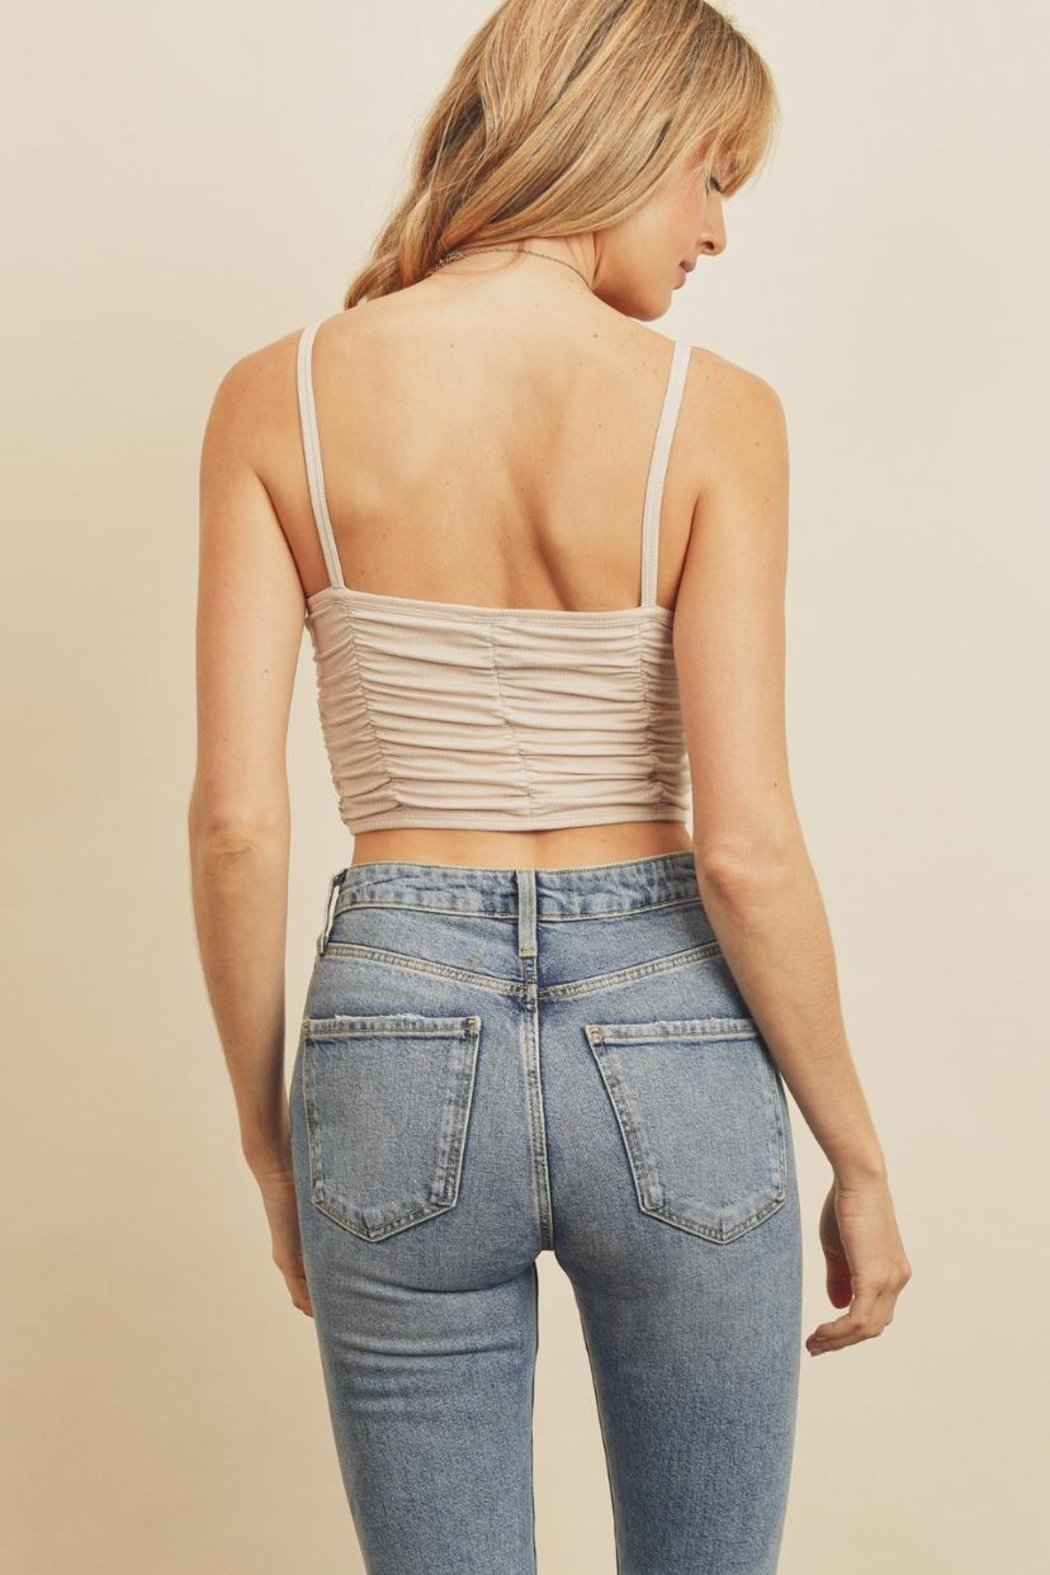 dress forum Ribbed Ruched Crop-Top - Front Full Image